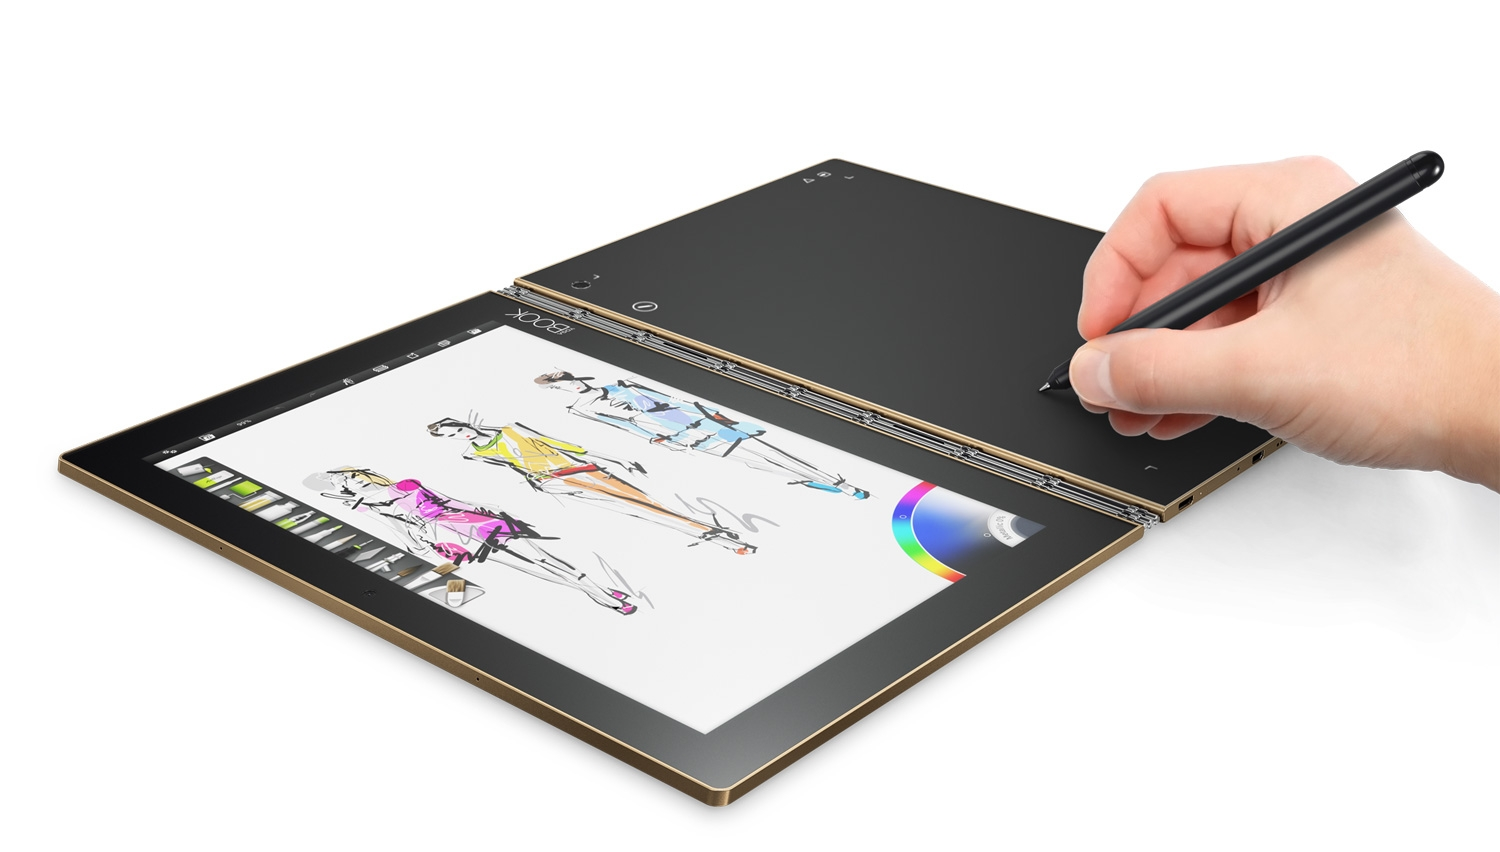 Lenovo 39 s beautiful tablet laptop hybrid also captures what for Creare piantine online